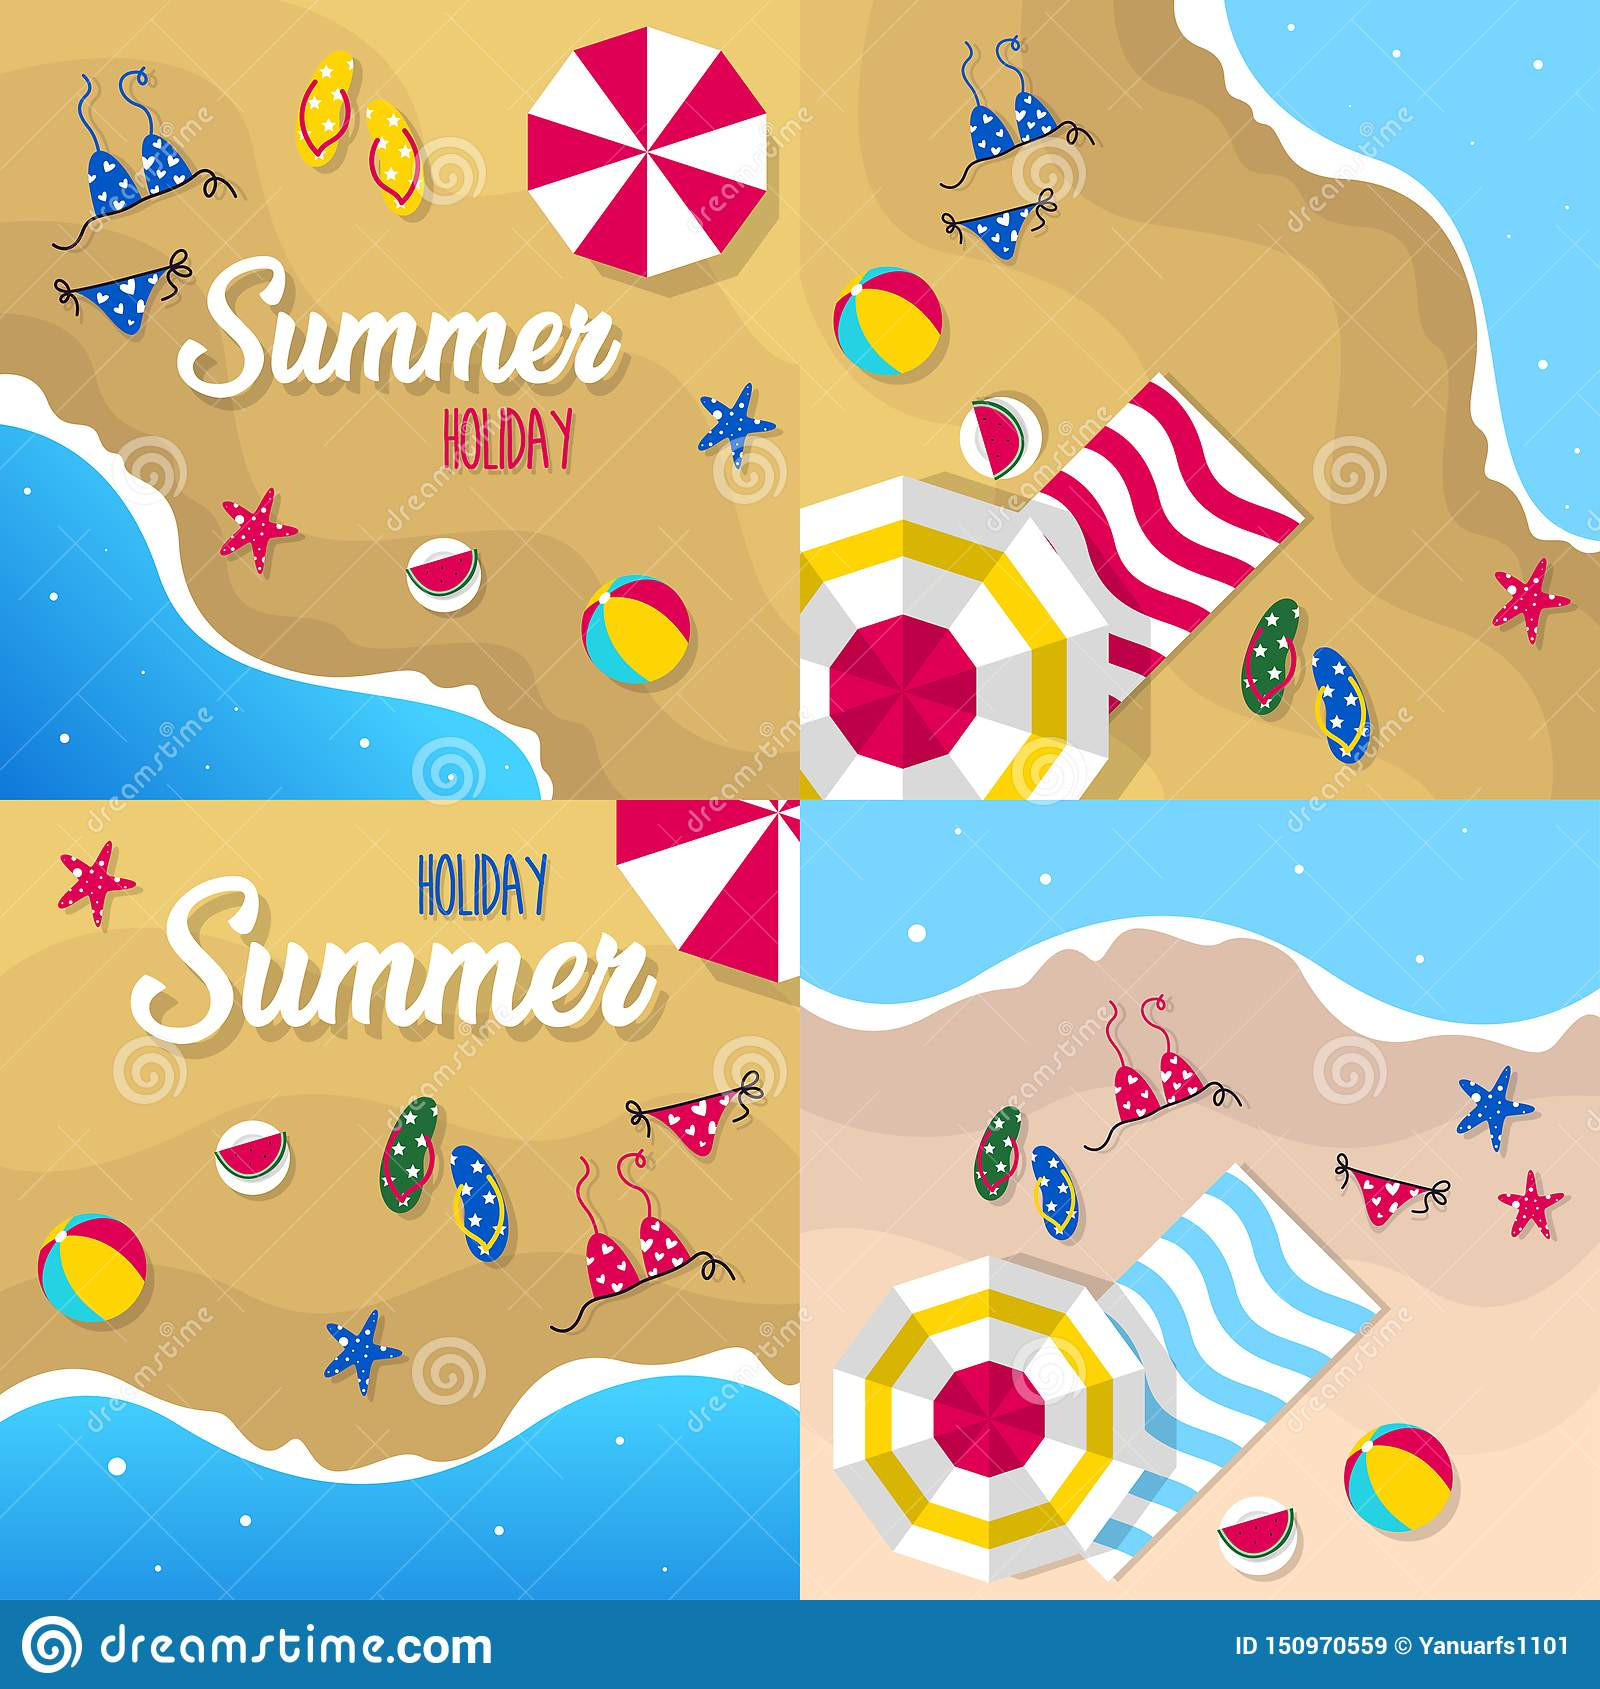 Happy summer holiday in the beach illustration. Tropical holiday in summer illustration